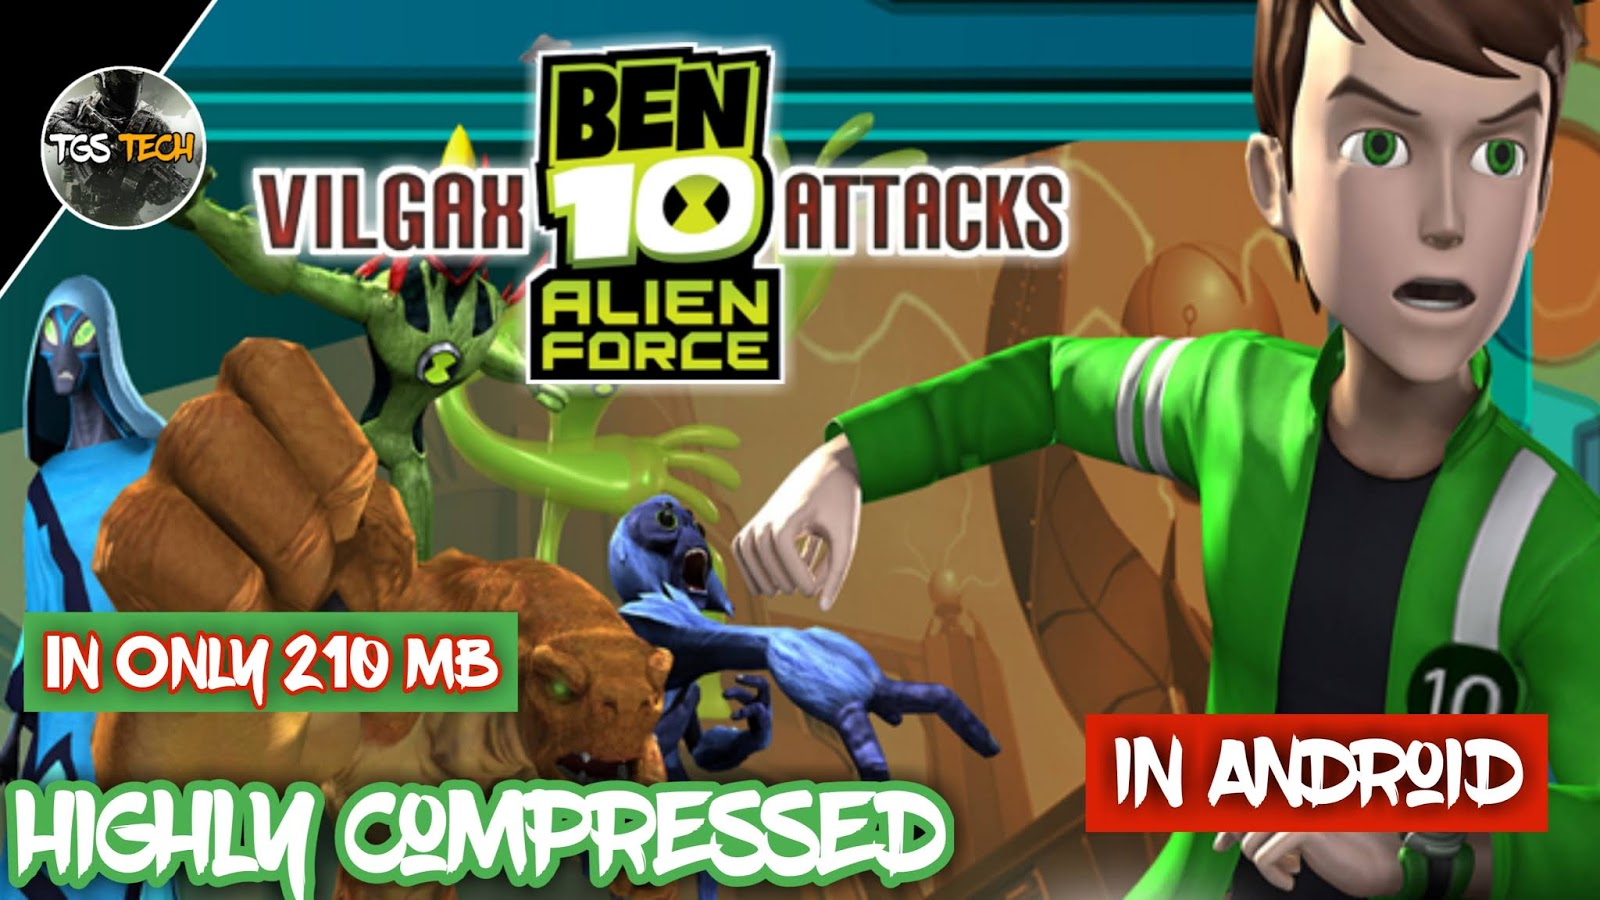 How to download Ben 10 Vilgax Attacks highly compressed in